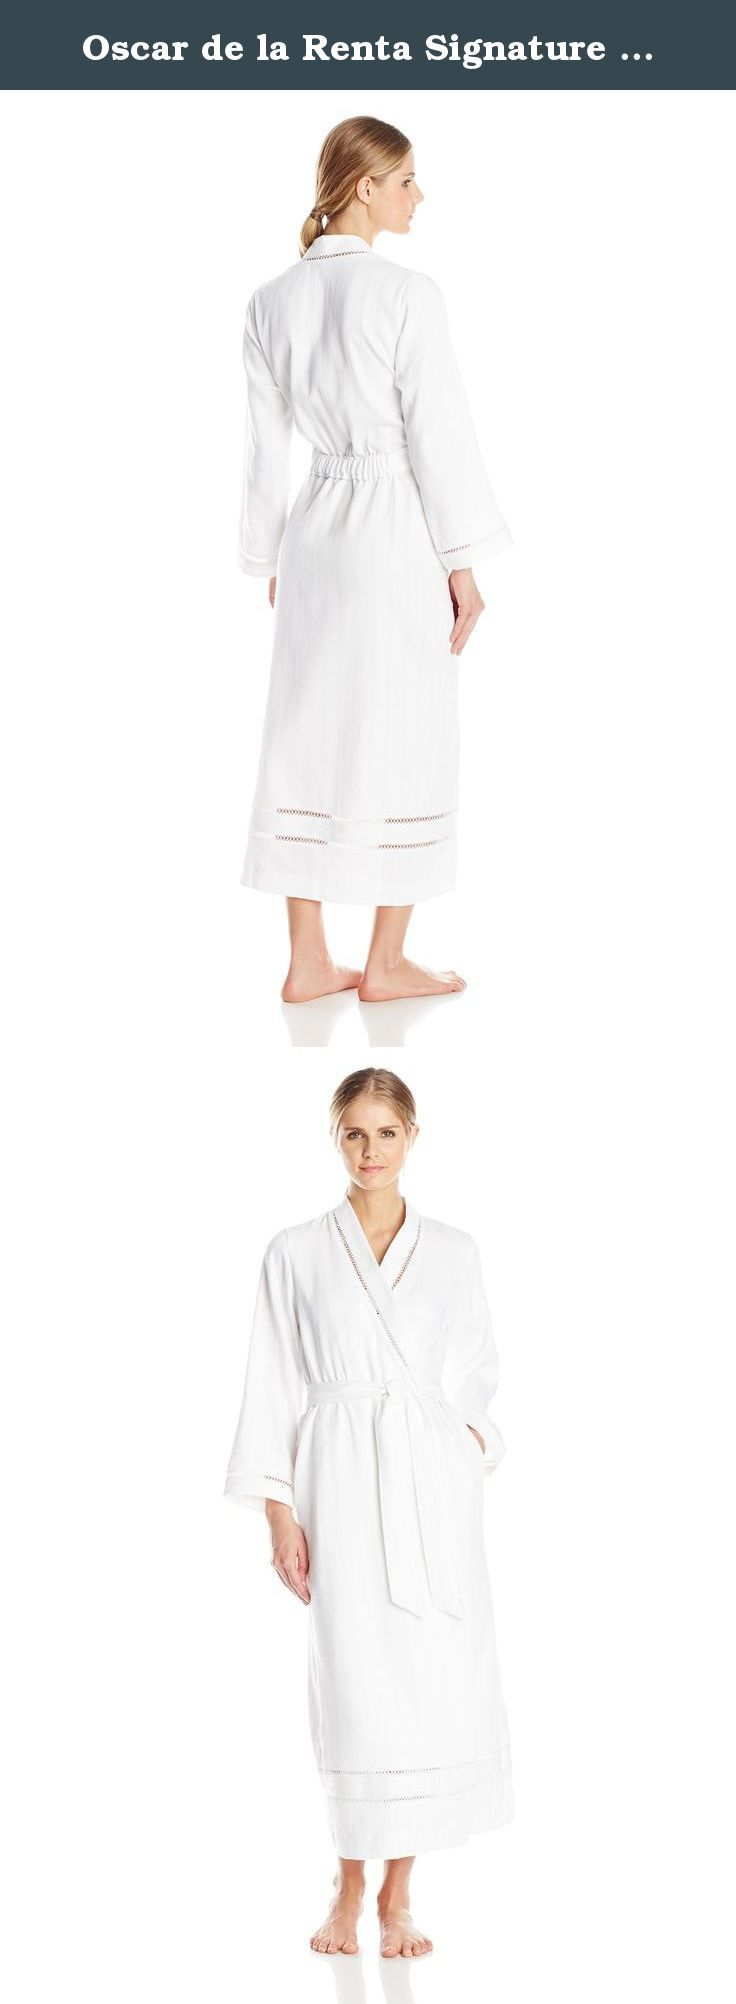 Oscar de la Renta Signature Women's Brushed Cotton Long Spa Robe, White, Medium/Large. Soft and luxe, our cotton spa long robe is an elegant essential from day to night. Fabricated in a brushed cotton stripe waffle and trimmed with a woven cotton border and venise lace inset.